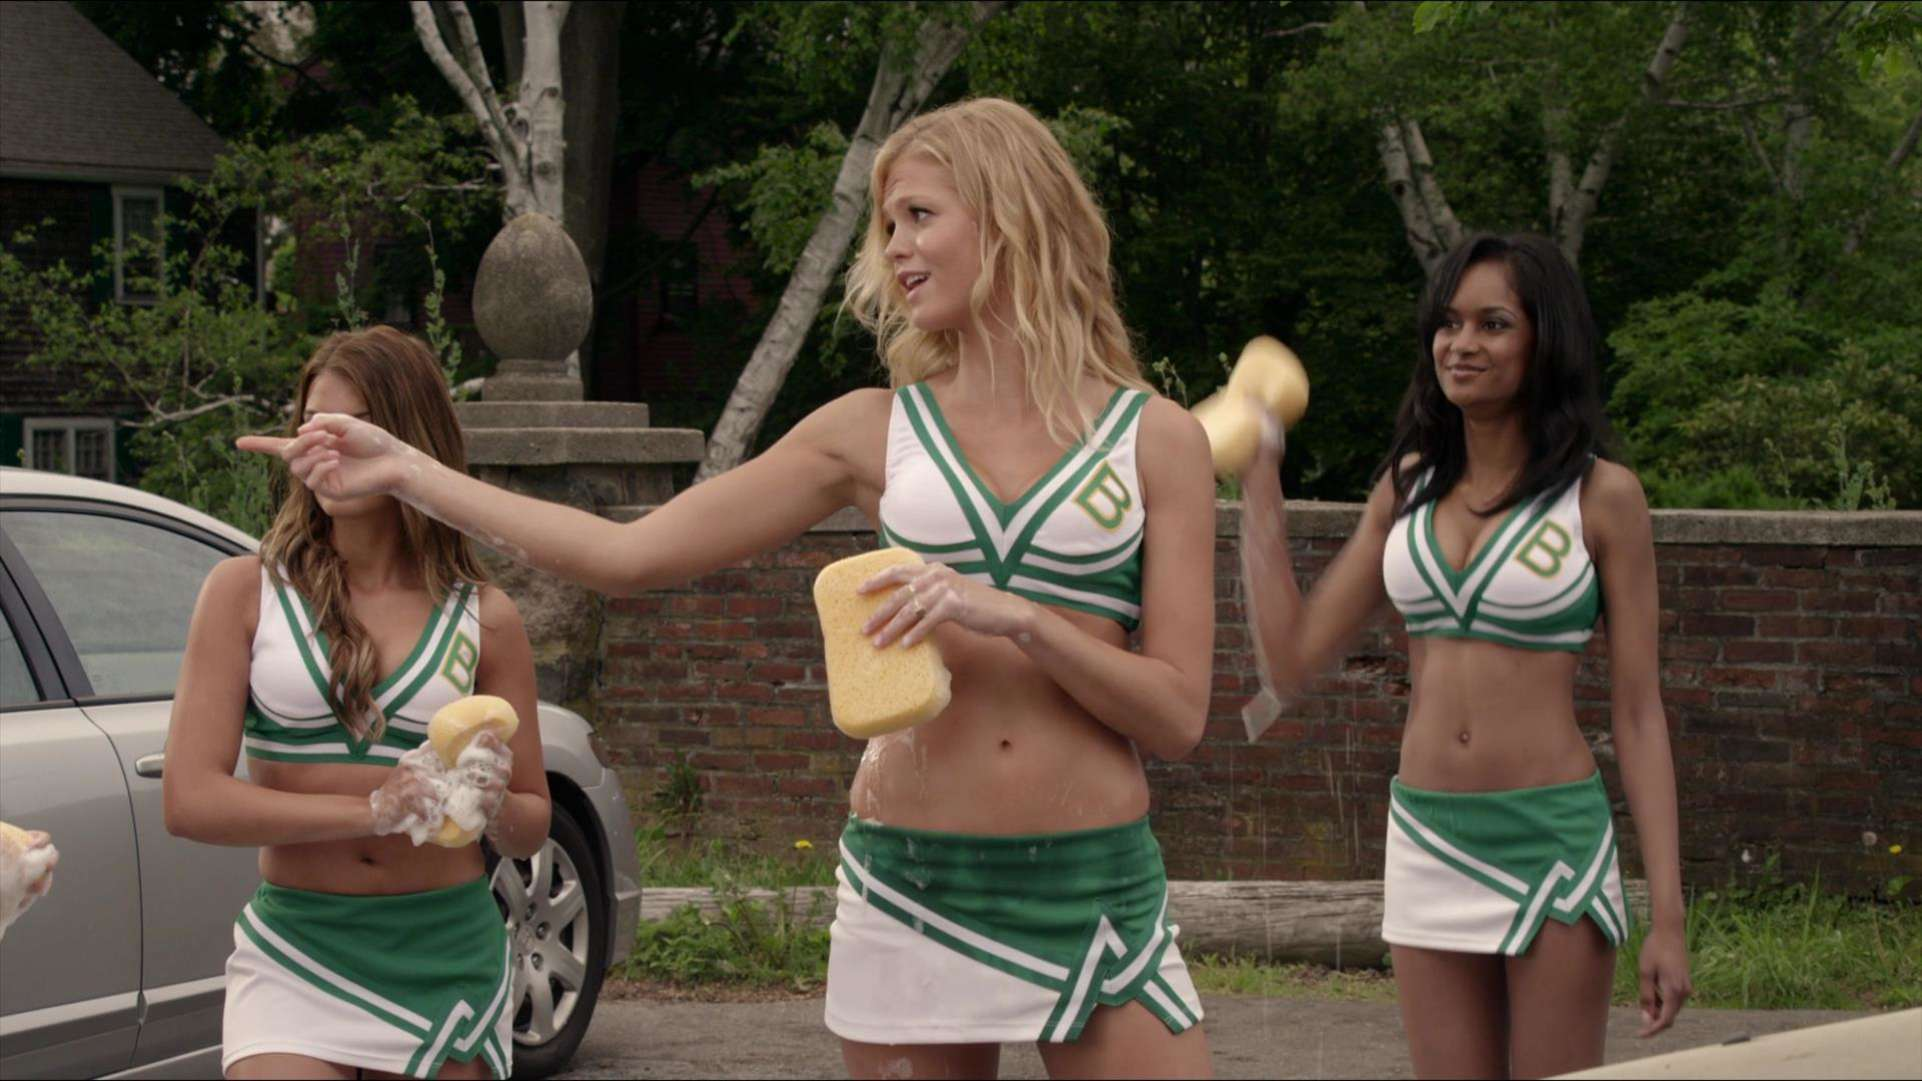 Erin Heatherton 2013 : Erin Heatherton Hot in Grown Ups 2-28